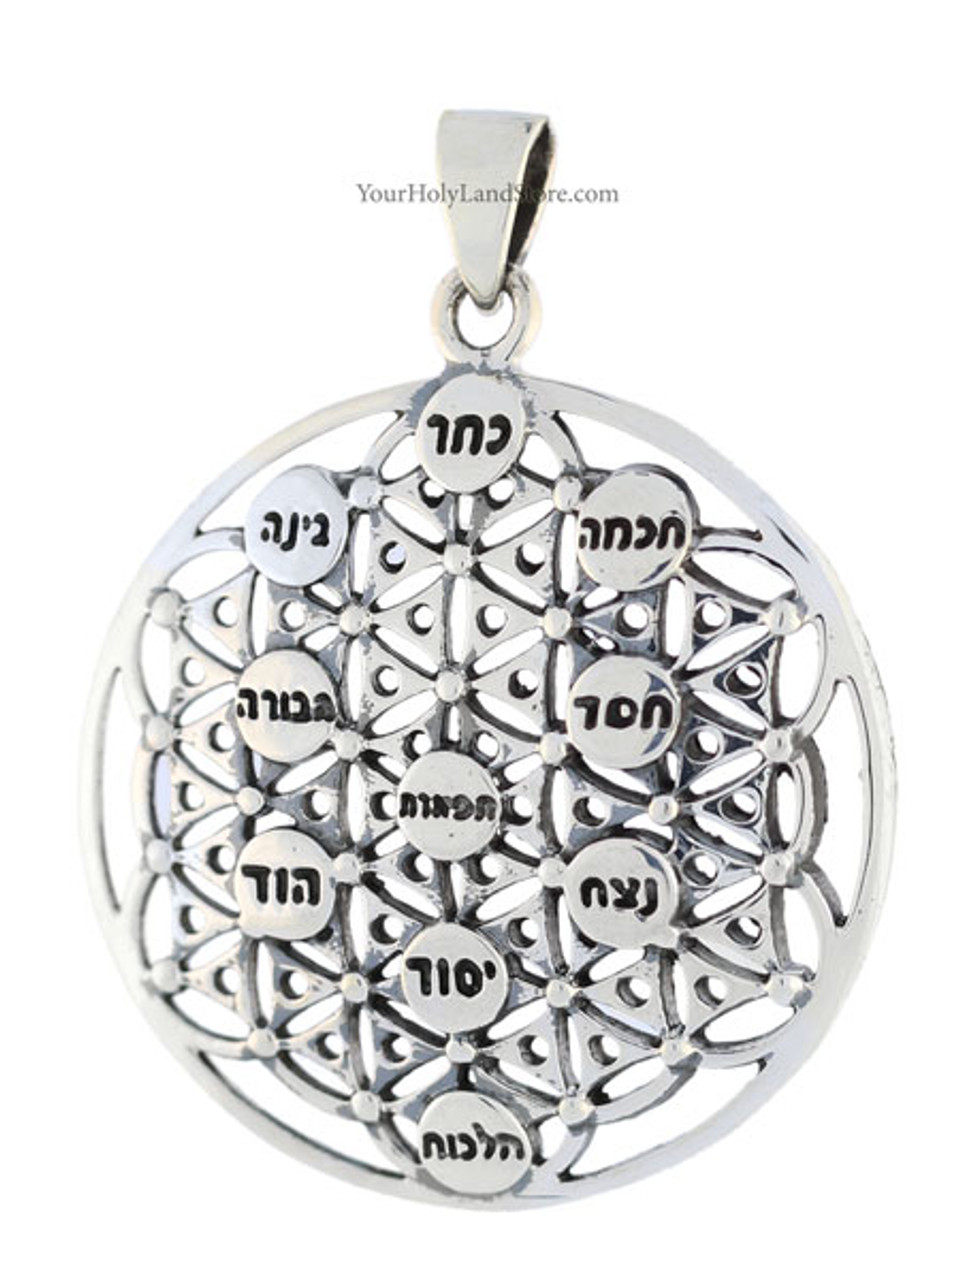 Kabbalah Flower Of Life Tree Of Life Pendant The structure of the tree of life is connected to the sacred teachings of the jewish kabbalah but can be seen 3,000 years earlier in egypt. kabbalah flower of life tree of life pendant